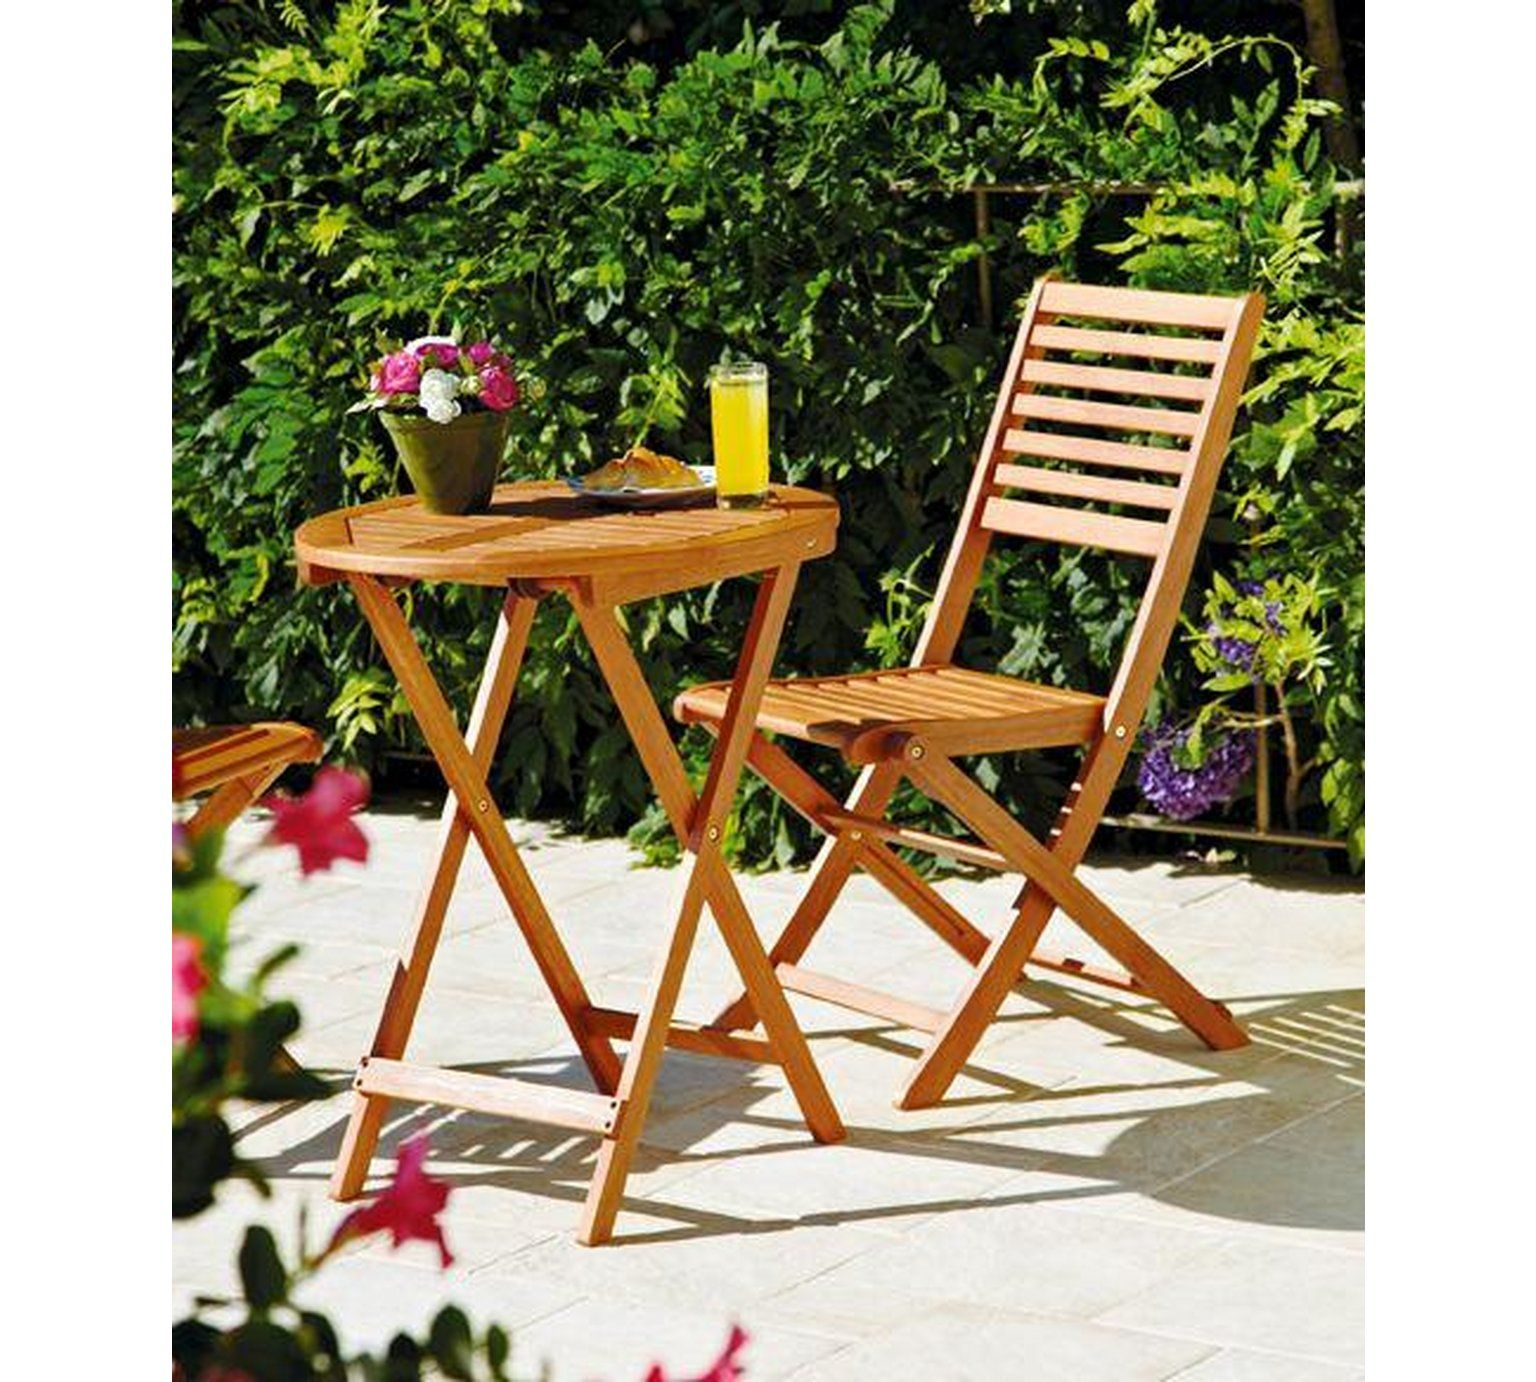 Pin by Megan Dow on Patio / Balcony Garden table and